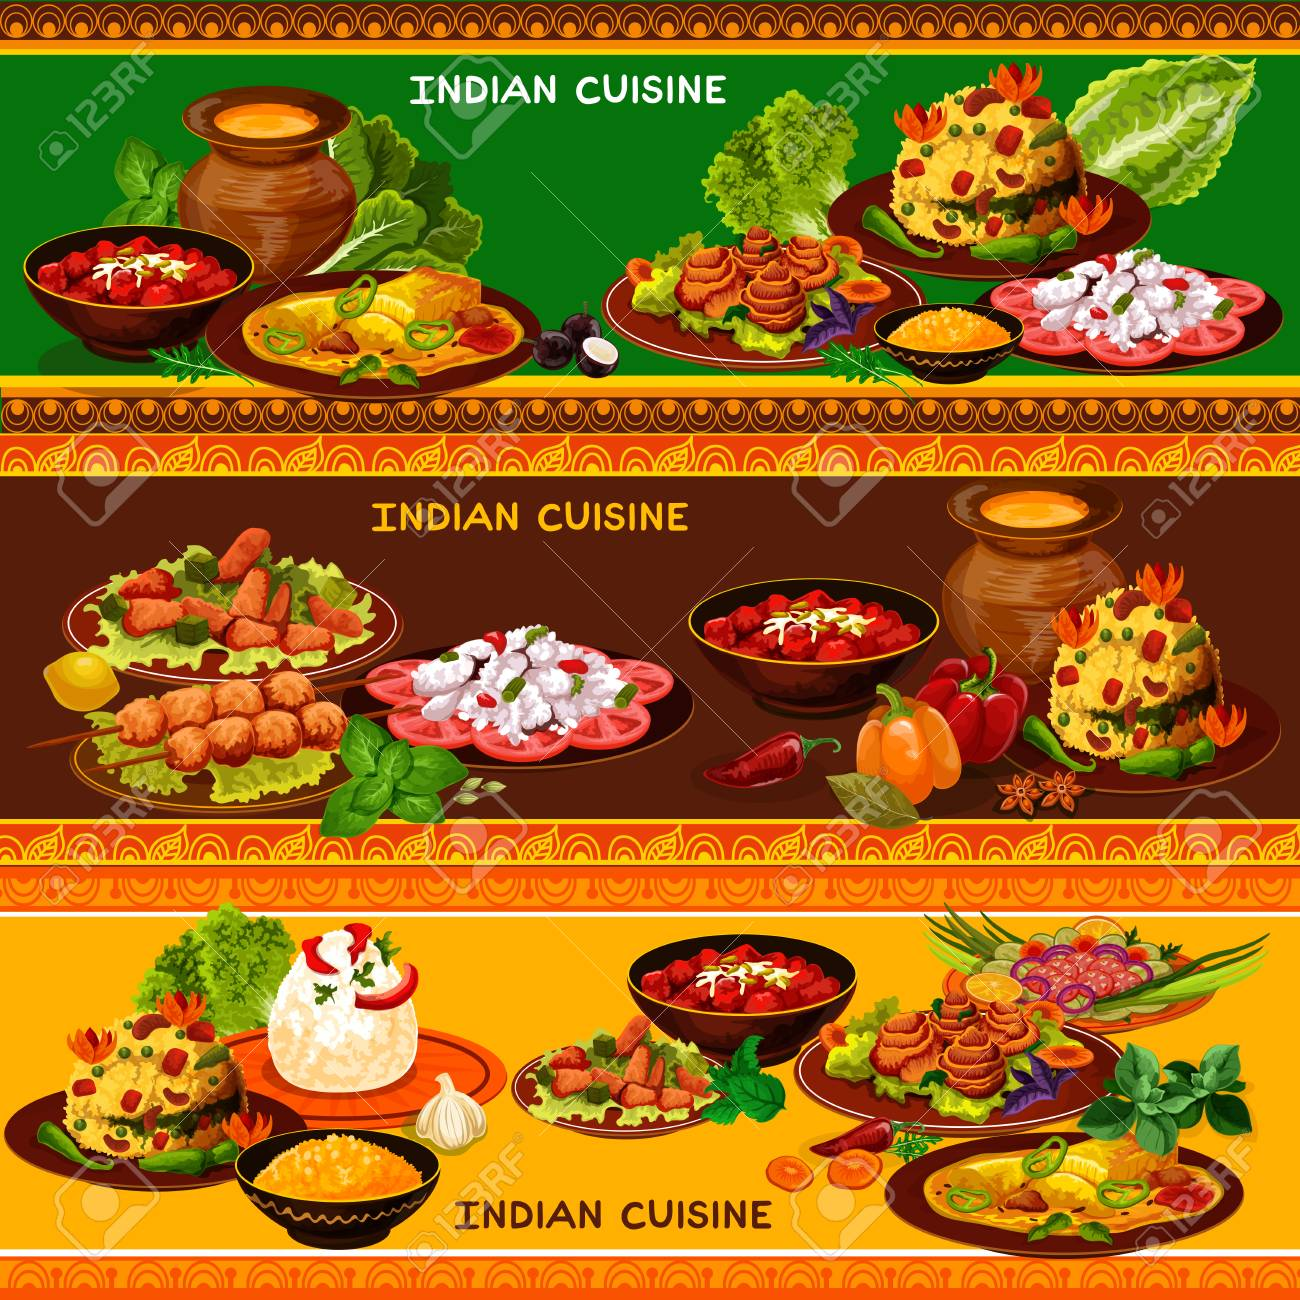 Indian Cuisine Restaurant Banner Set With Ethnic Asian Menu Royalty Free Cliparts Vectors And Stock Illustration Image 104096455